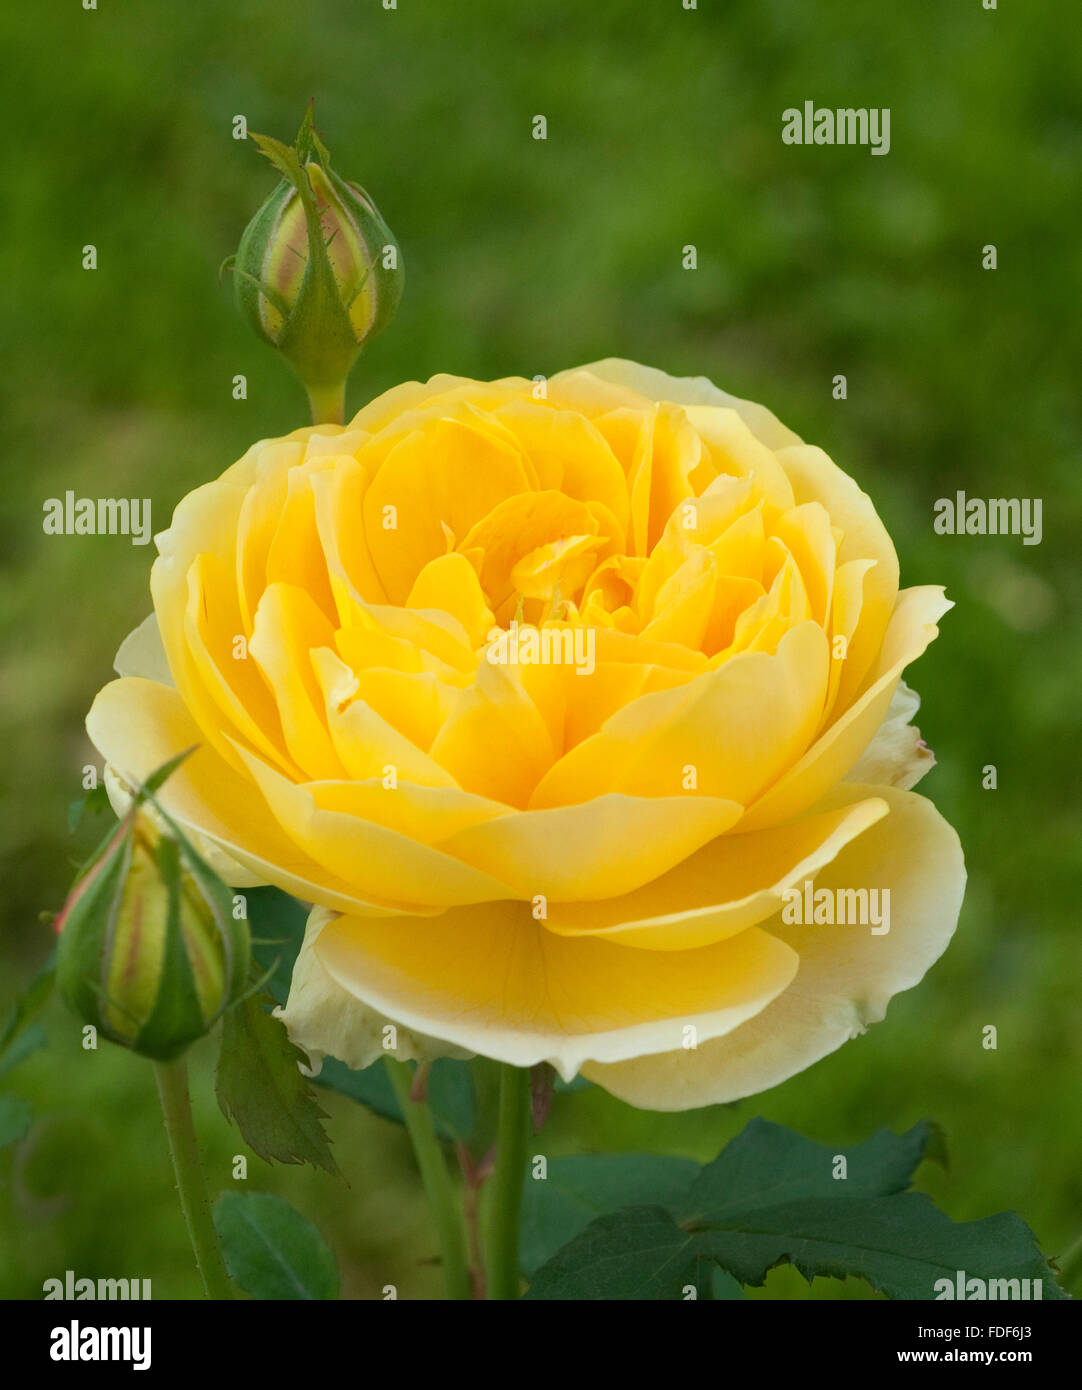 Englische Rose, Molineux, - Stock Image